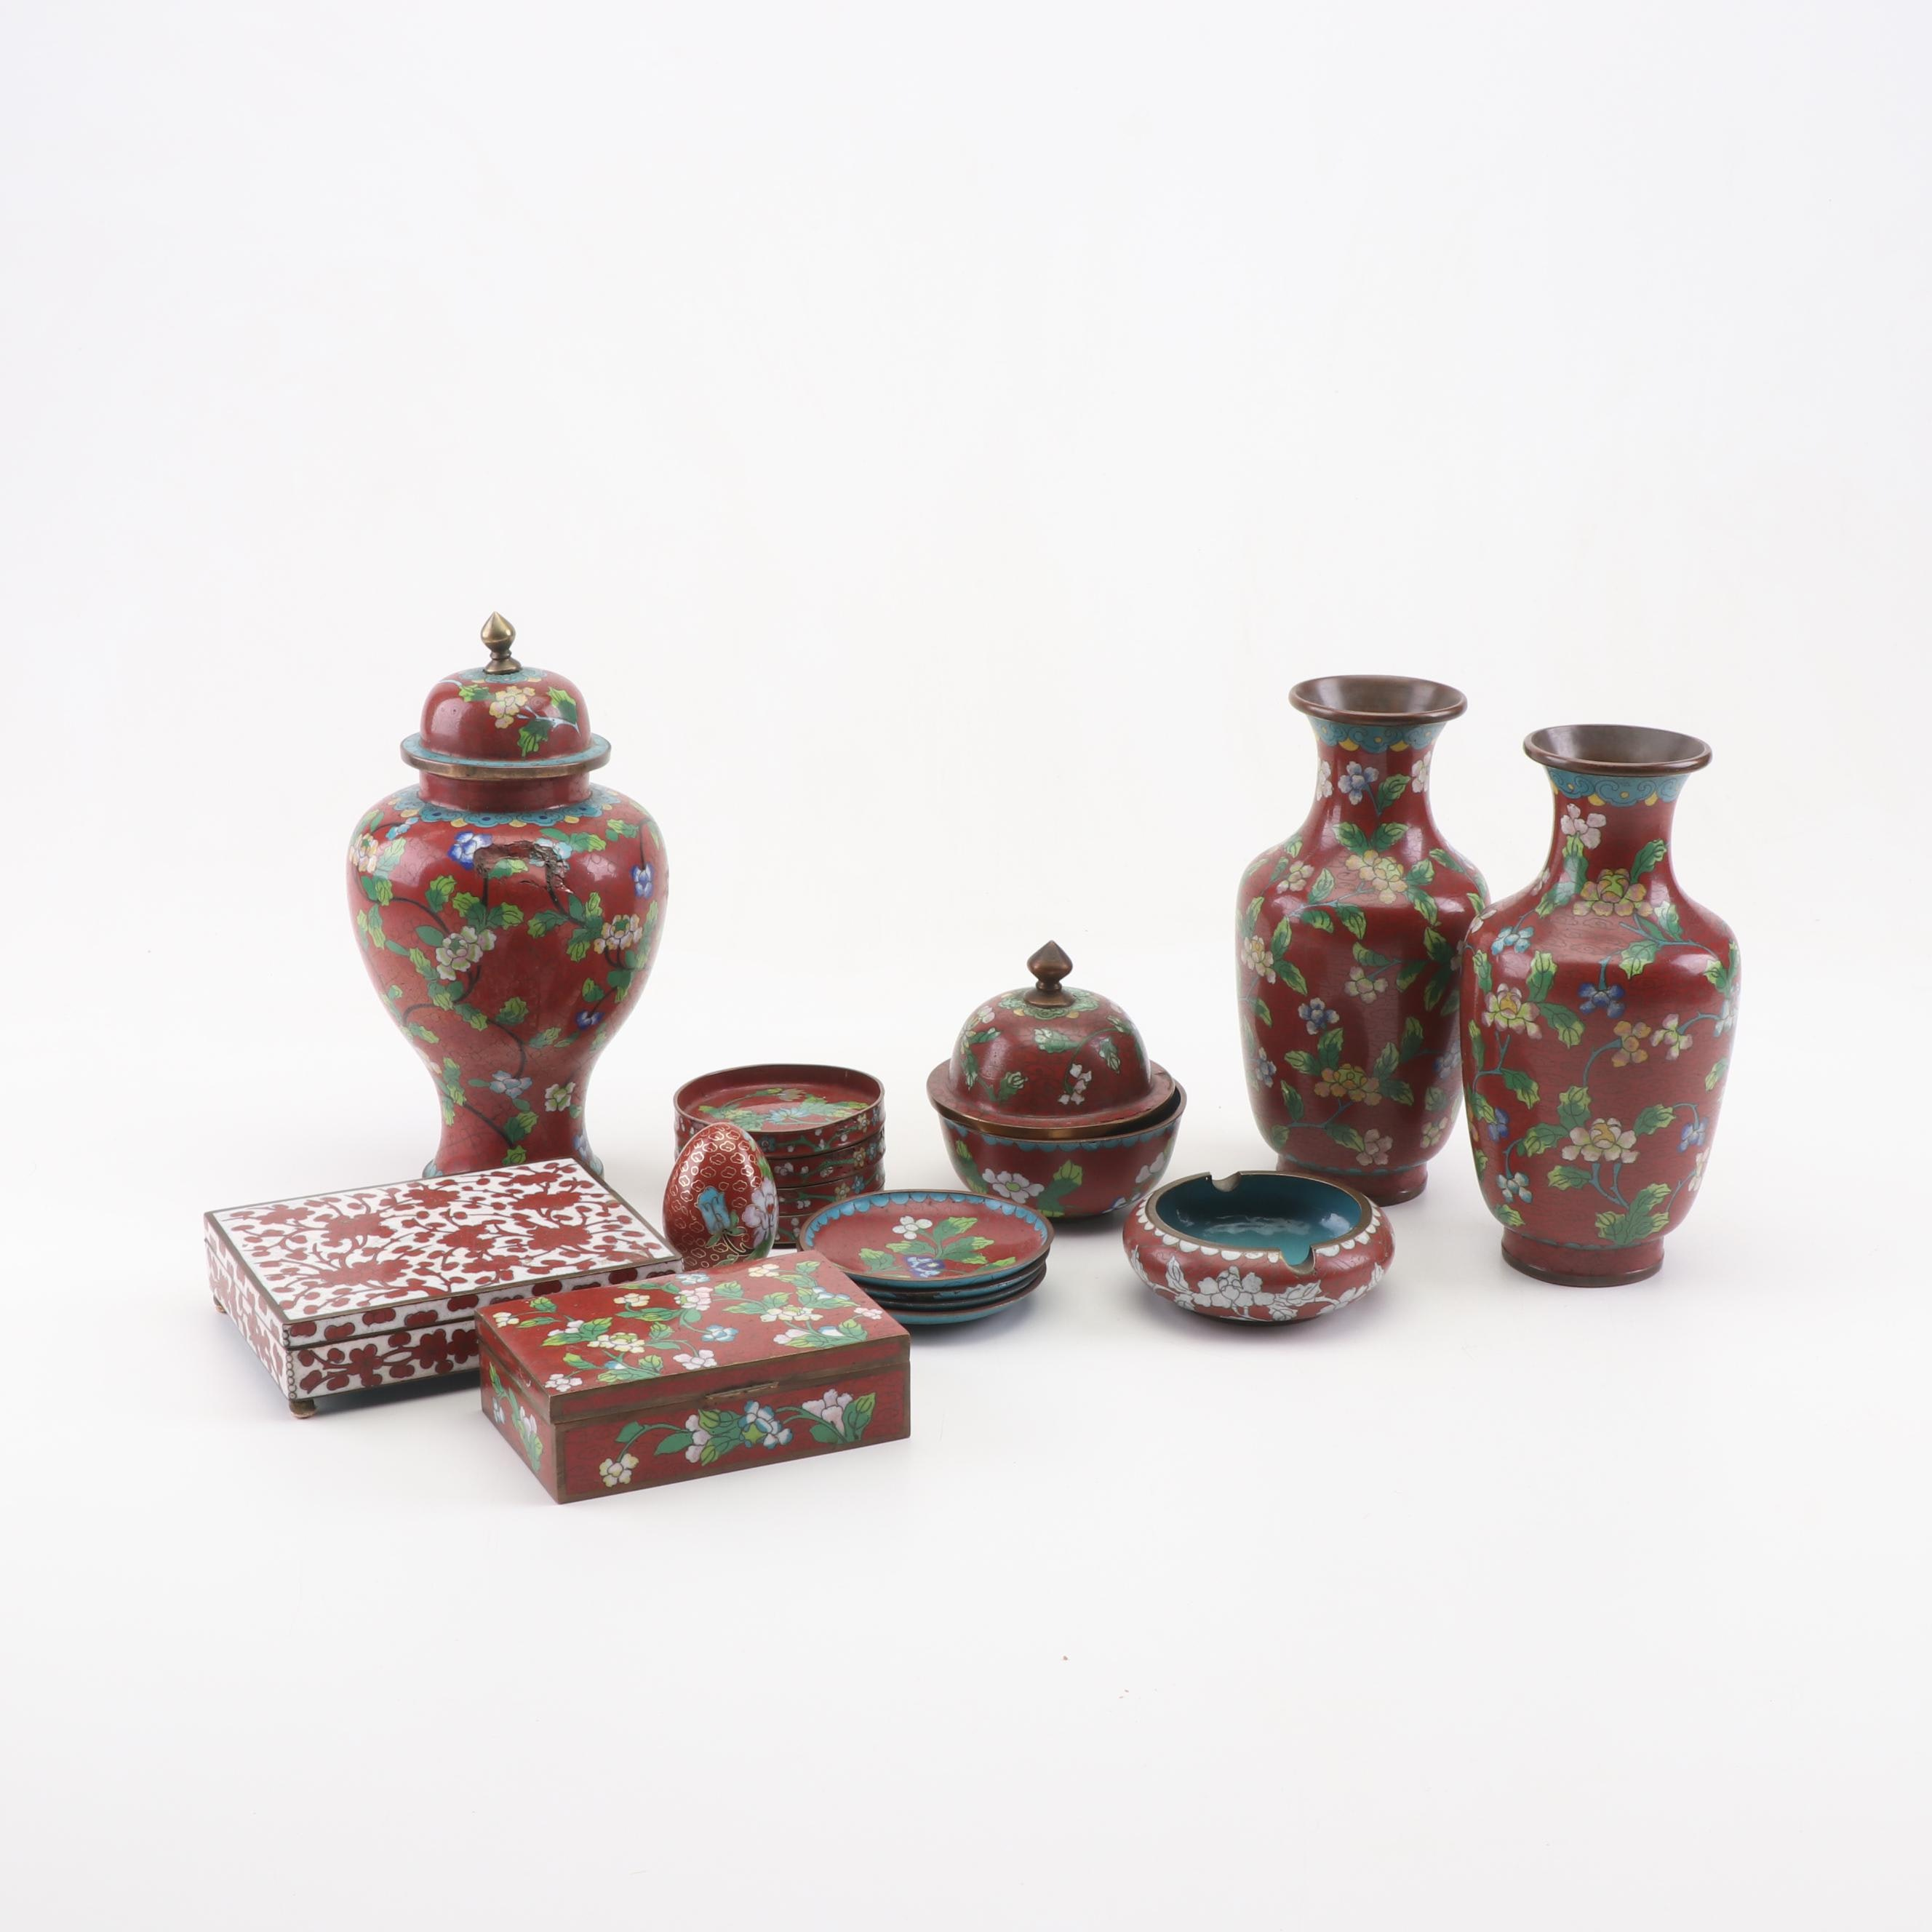 Chinese Cloisonné Decor with Ginger Jar, Vases, and Boxes